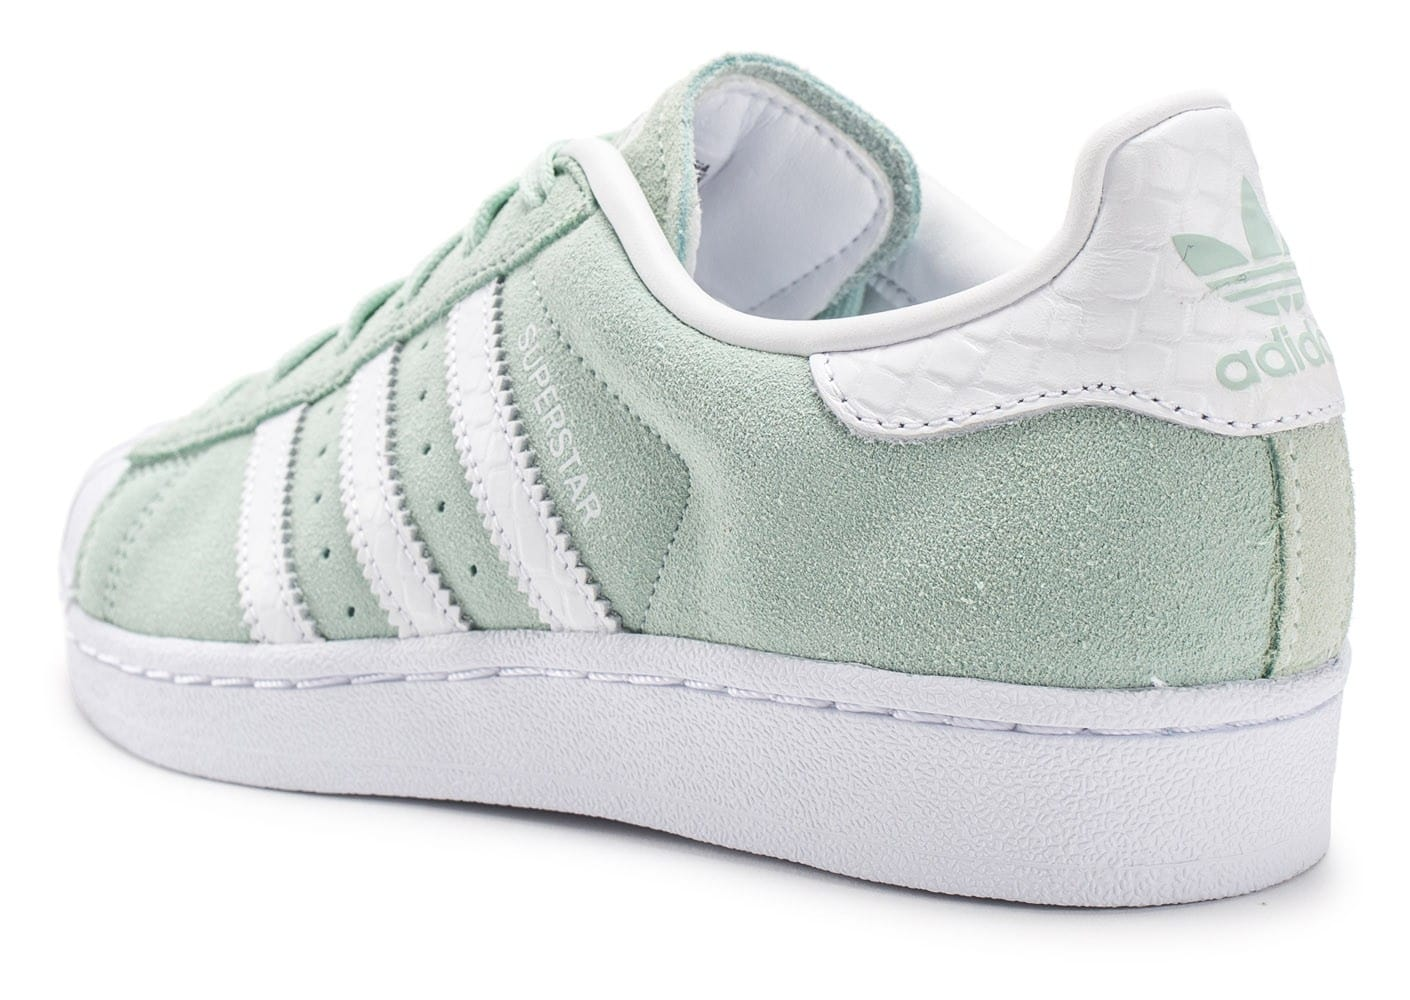 Buy 2 OFF ANY adidas superstar verte CASE AND GET 70% OFF! c0878a8662d9